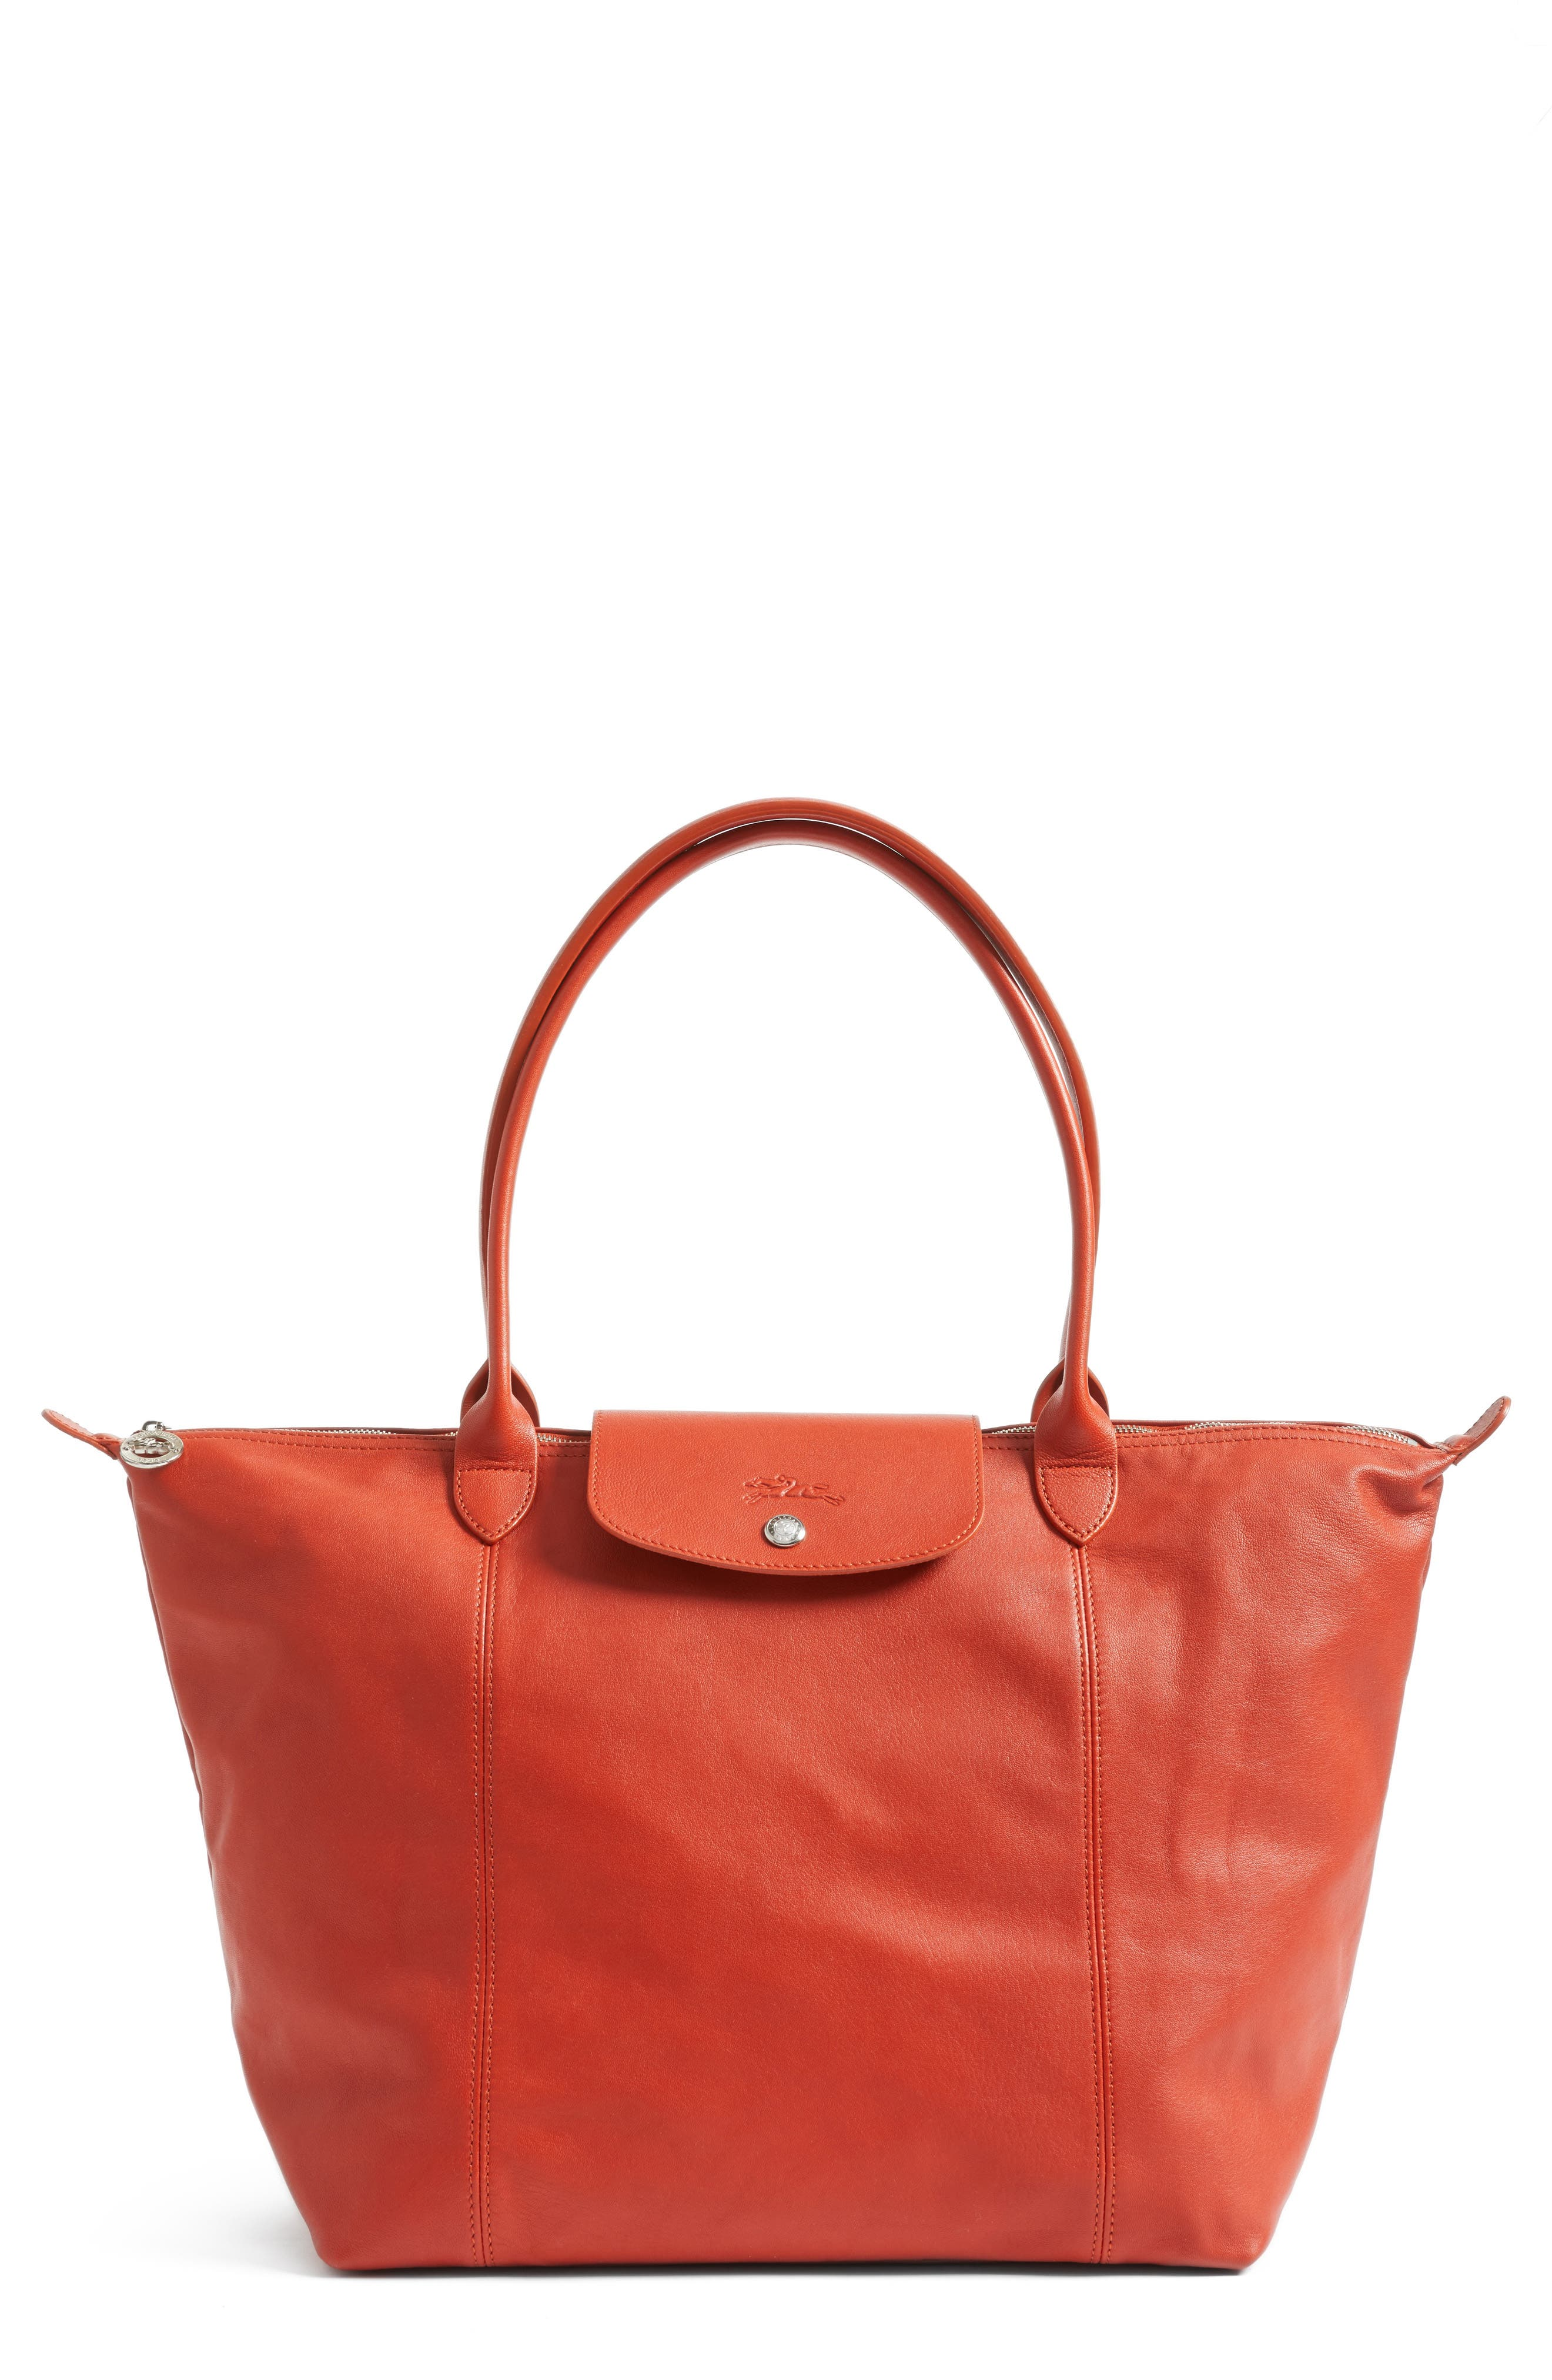 Alternate Image 1 Selected - Longchamp Le Pliage Cuir Leather Tote